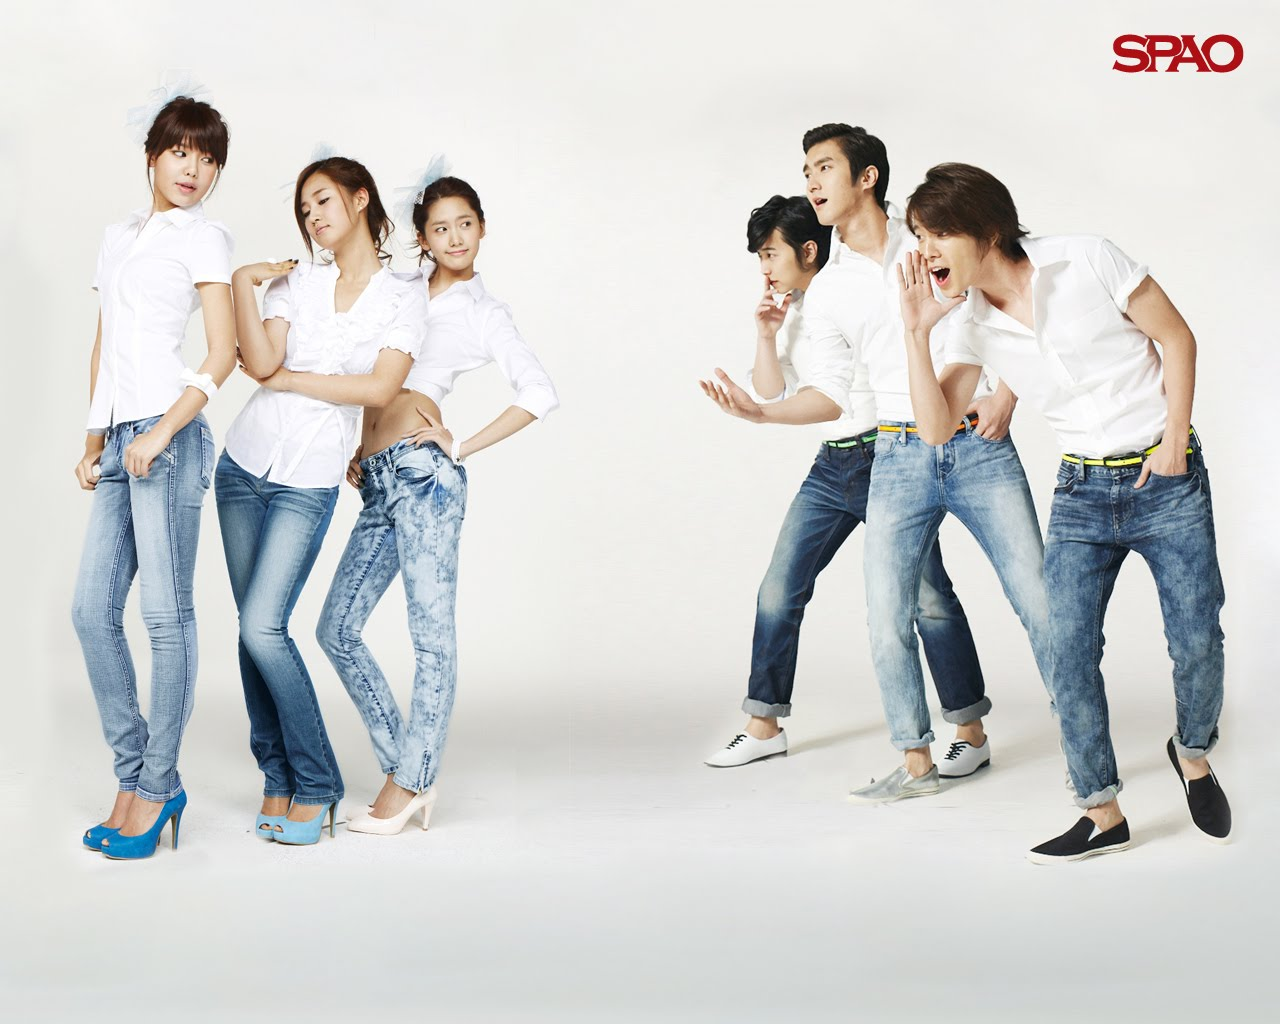 SNSD+Super+Junior+SPAO+(4).jpg